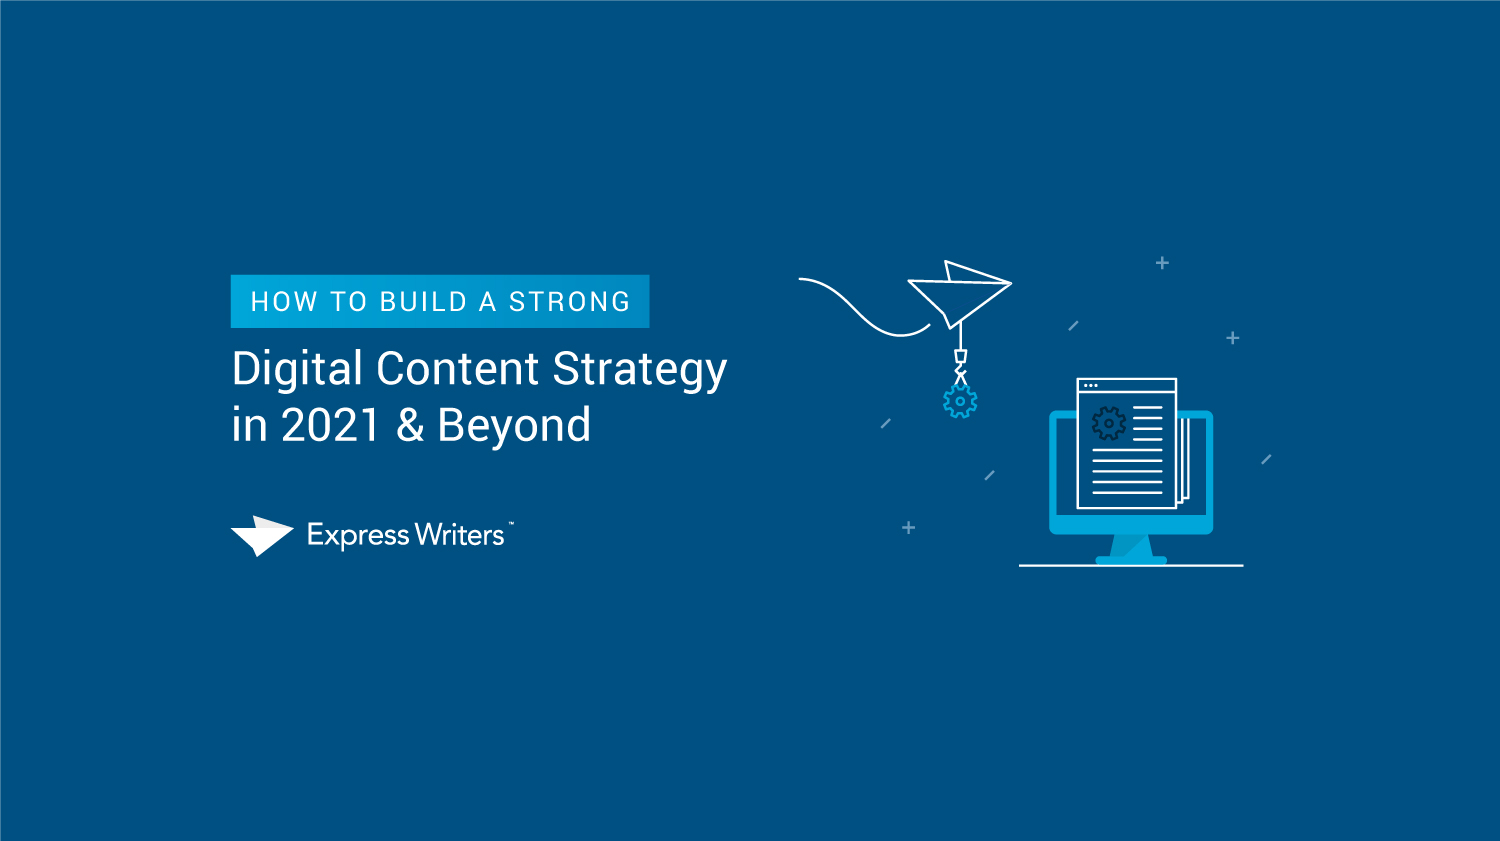 How to Build a Strong Digital Content Strategy